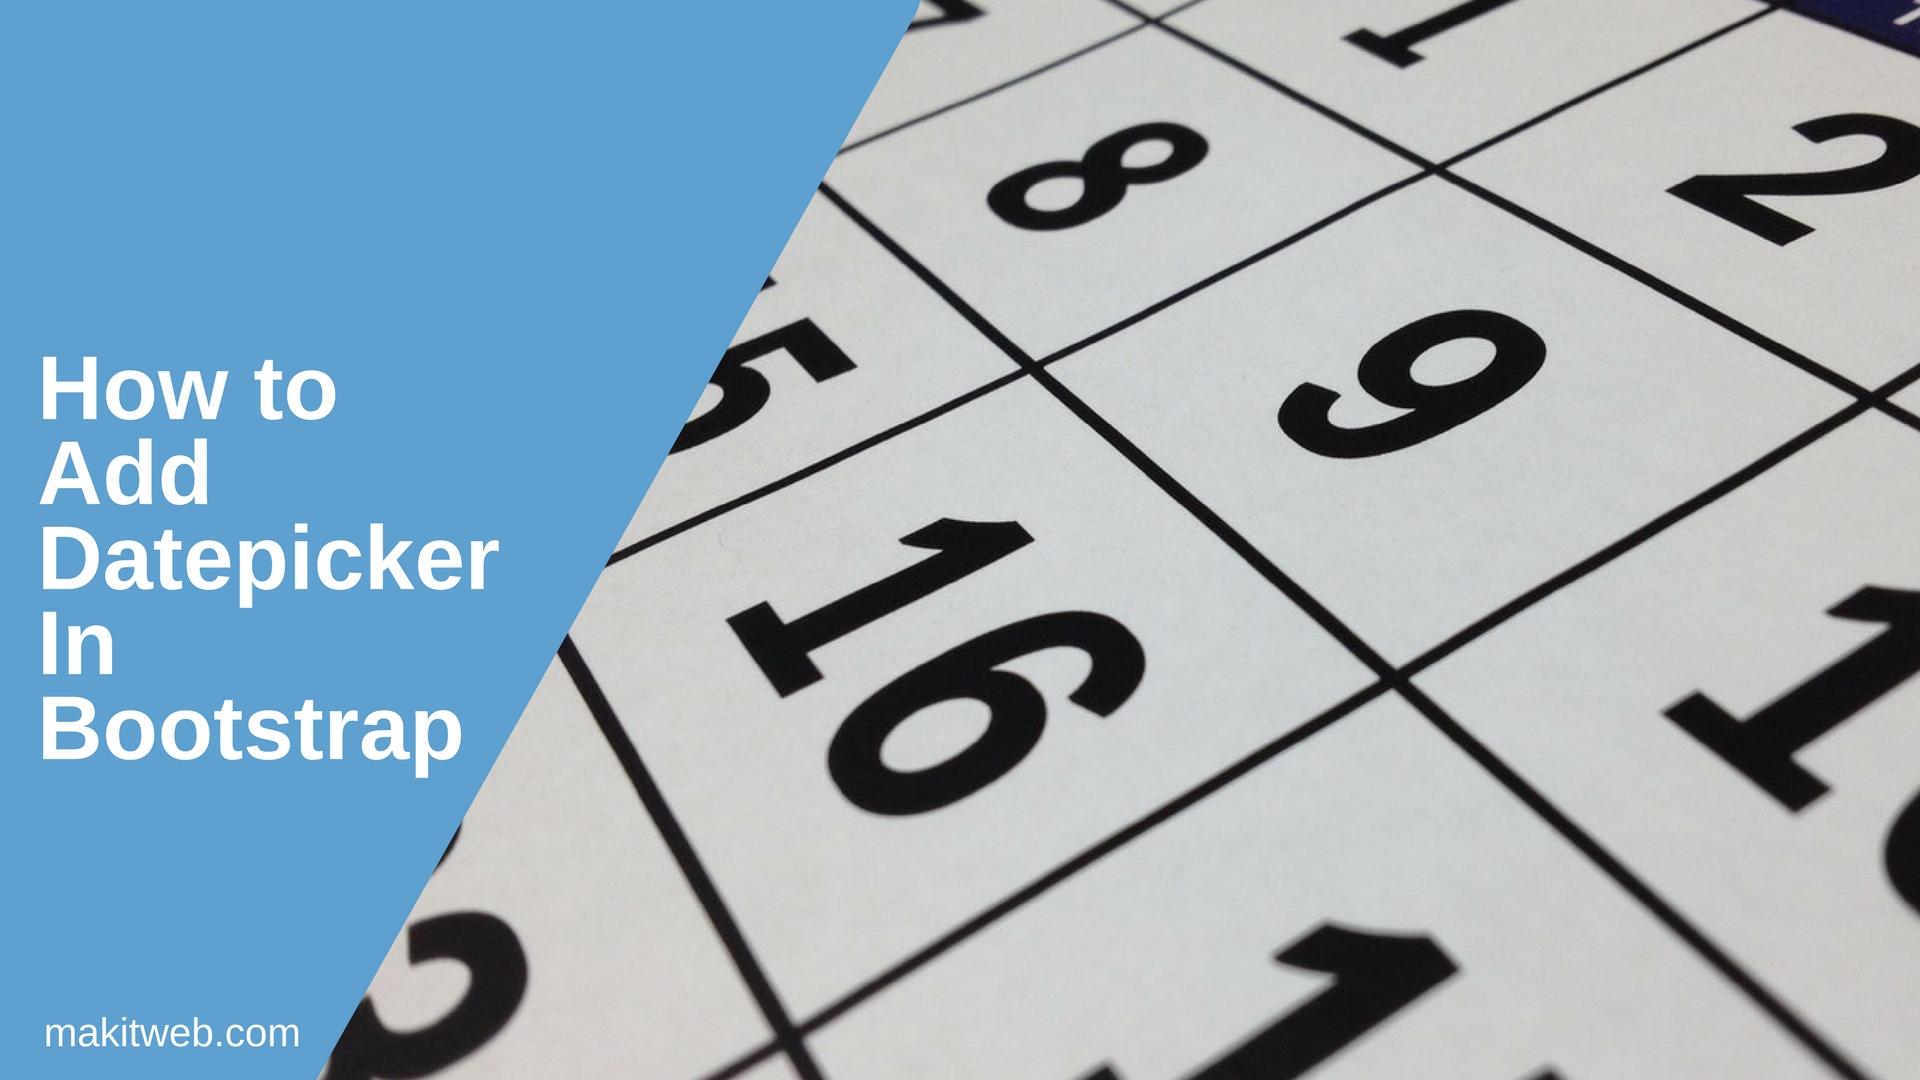 How to add datepicker in Bootstrap